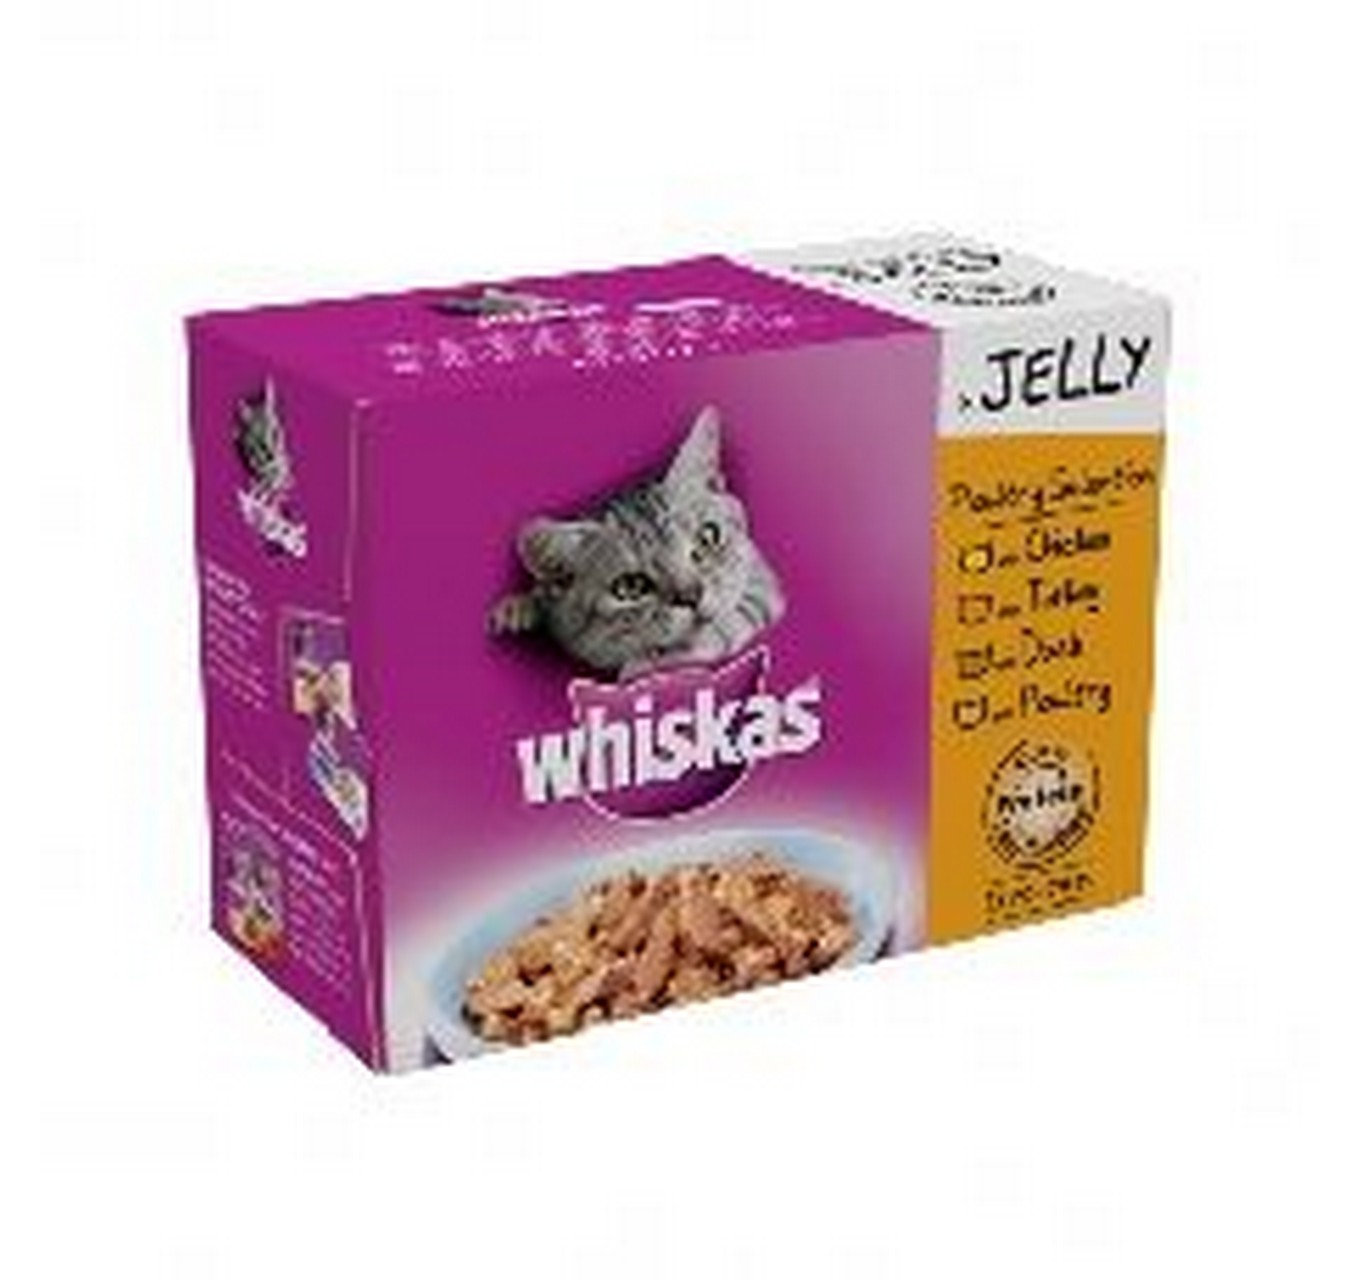 Whiskas Poultry Mix 12x100g